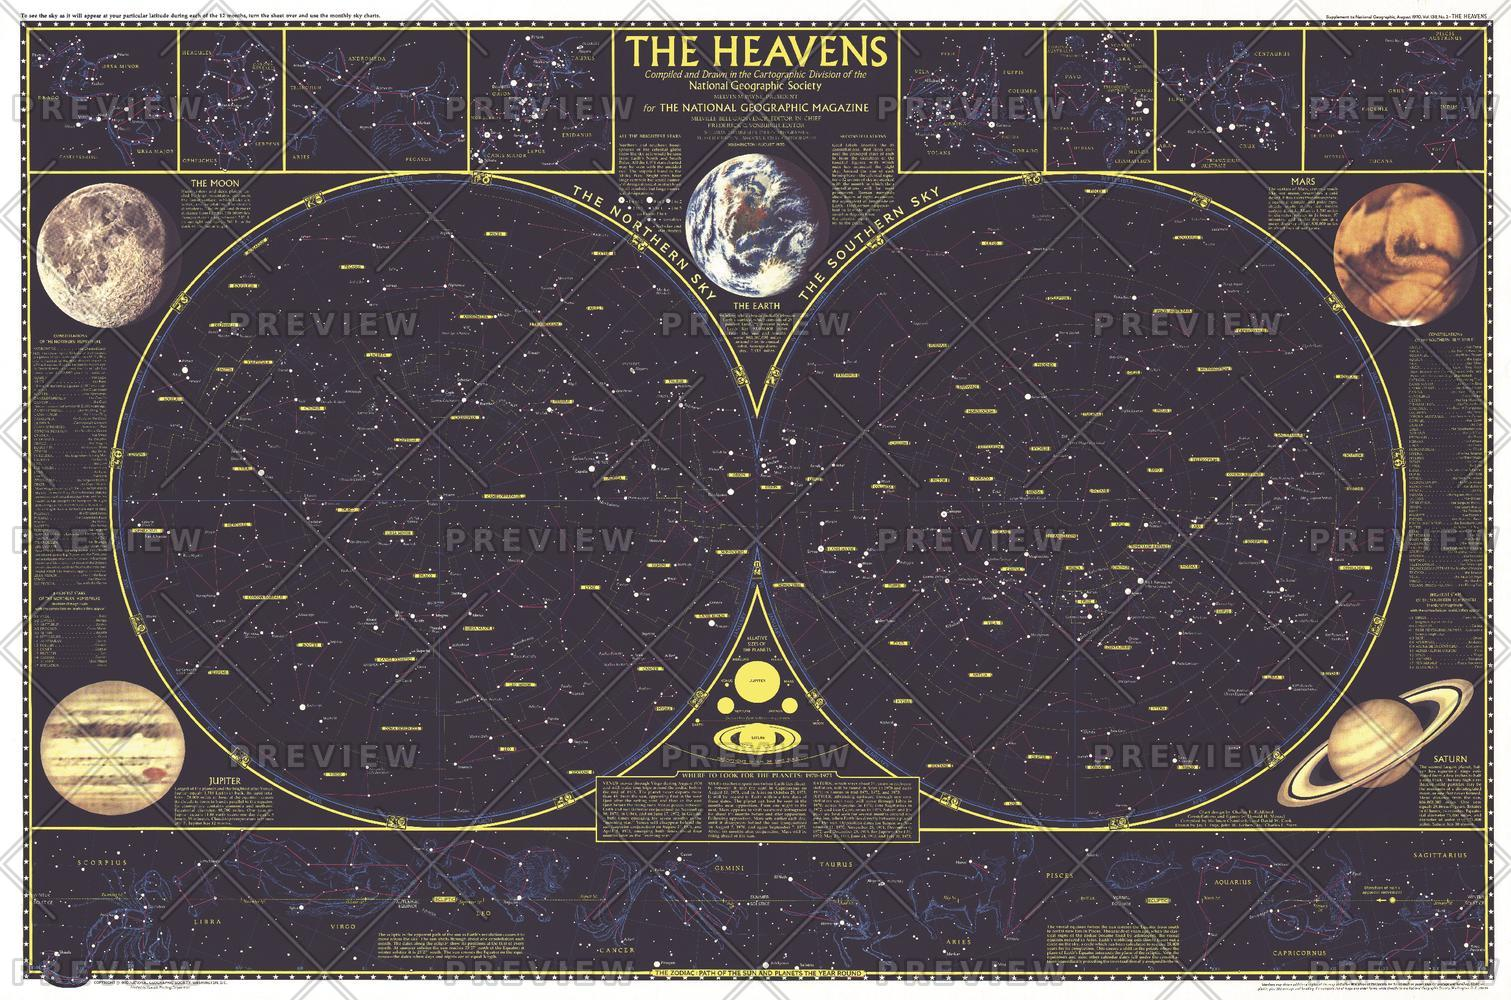 Heavens - Published 1970